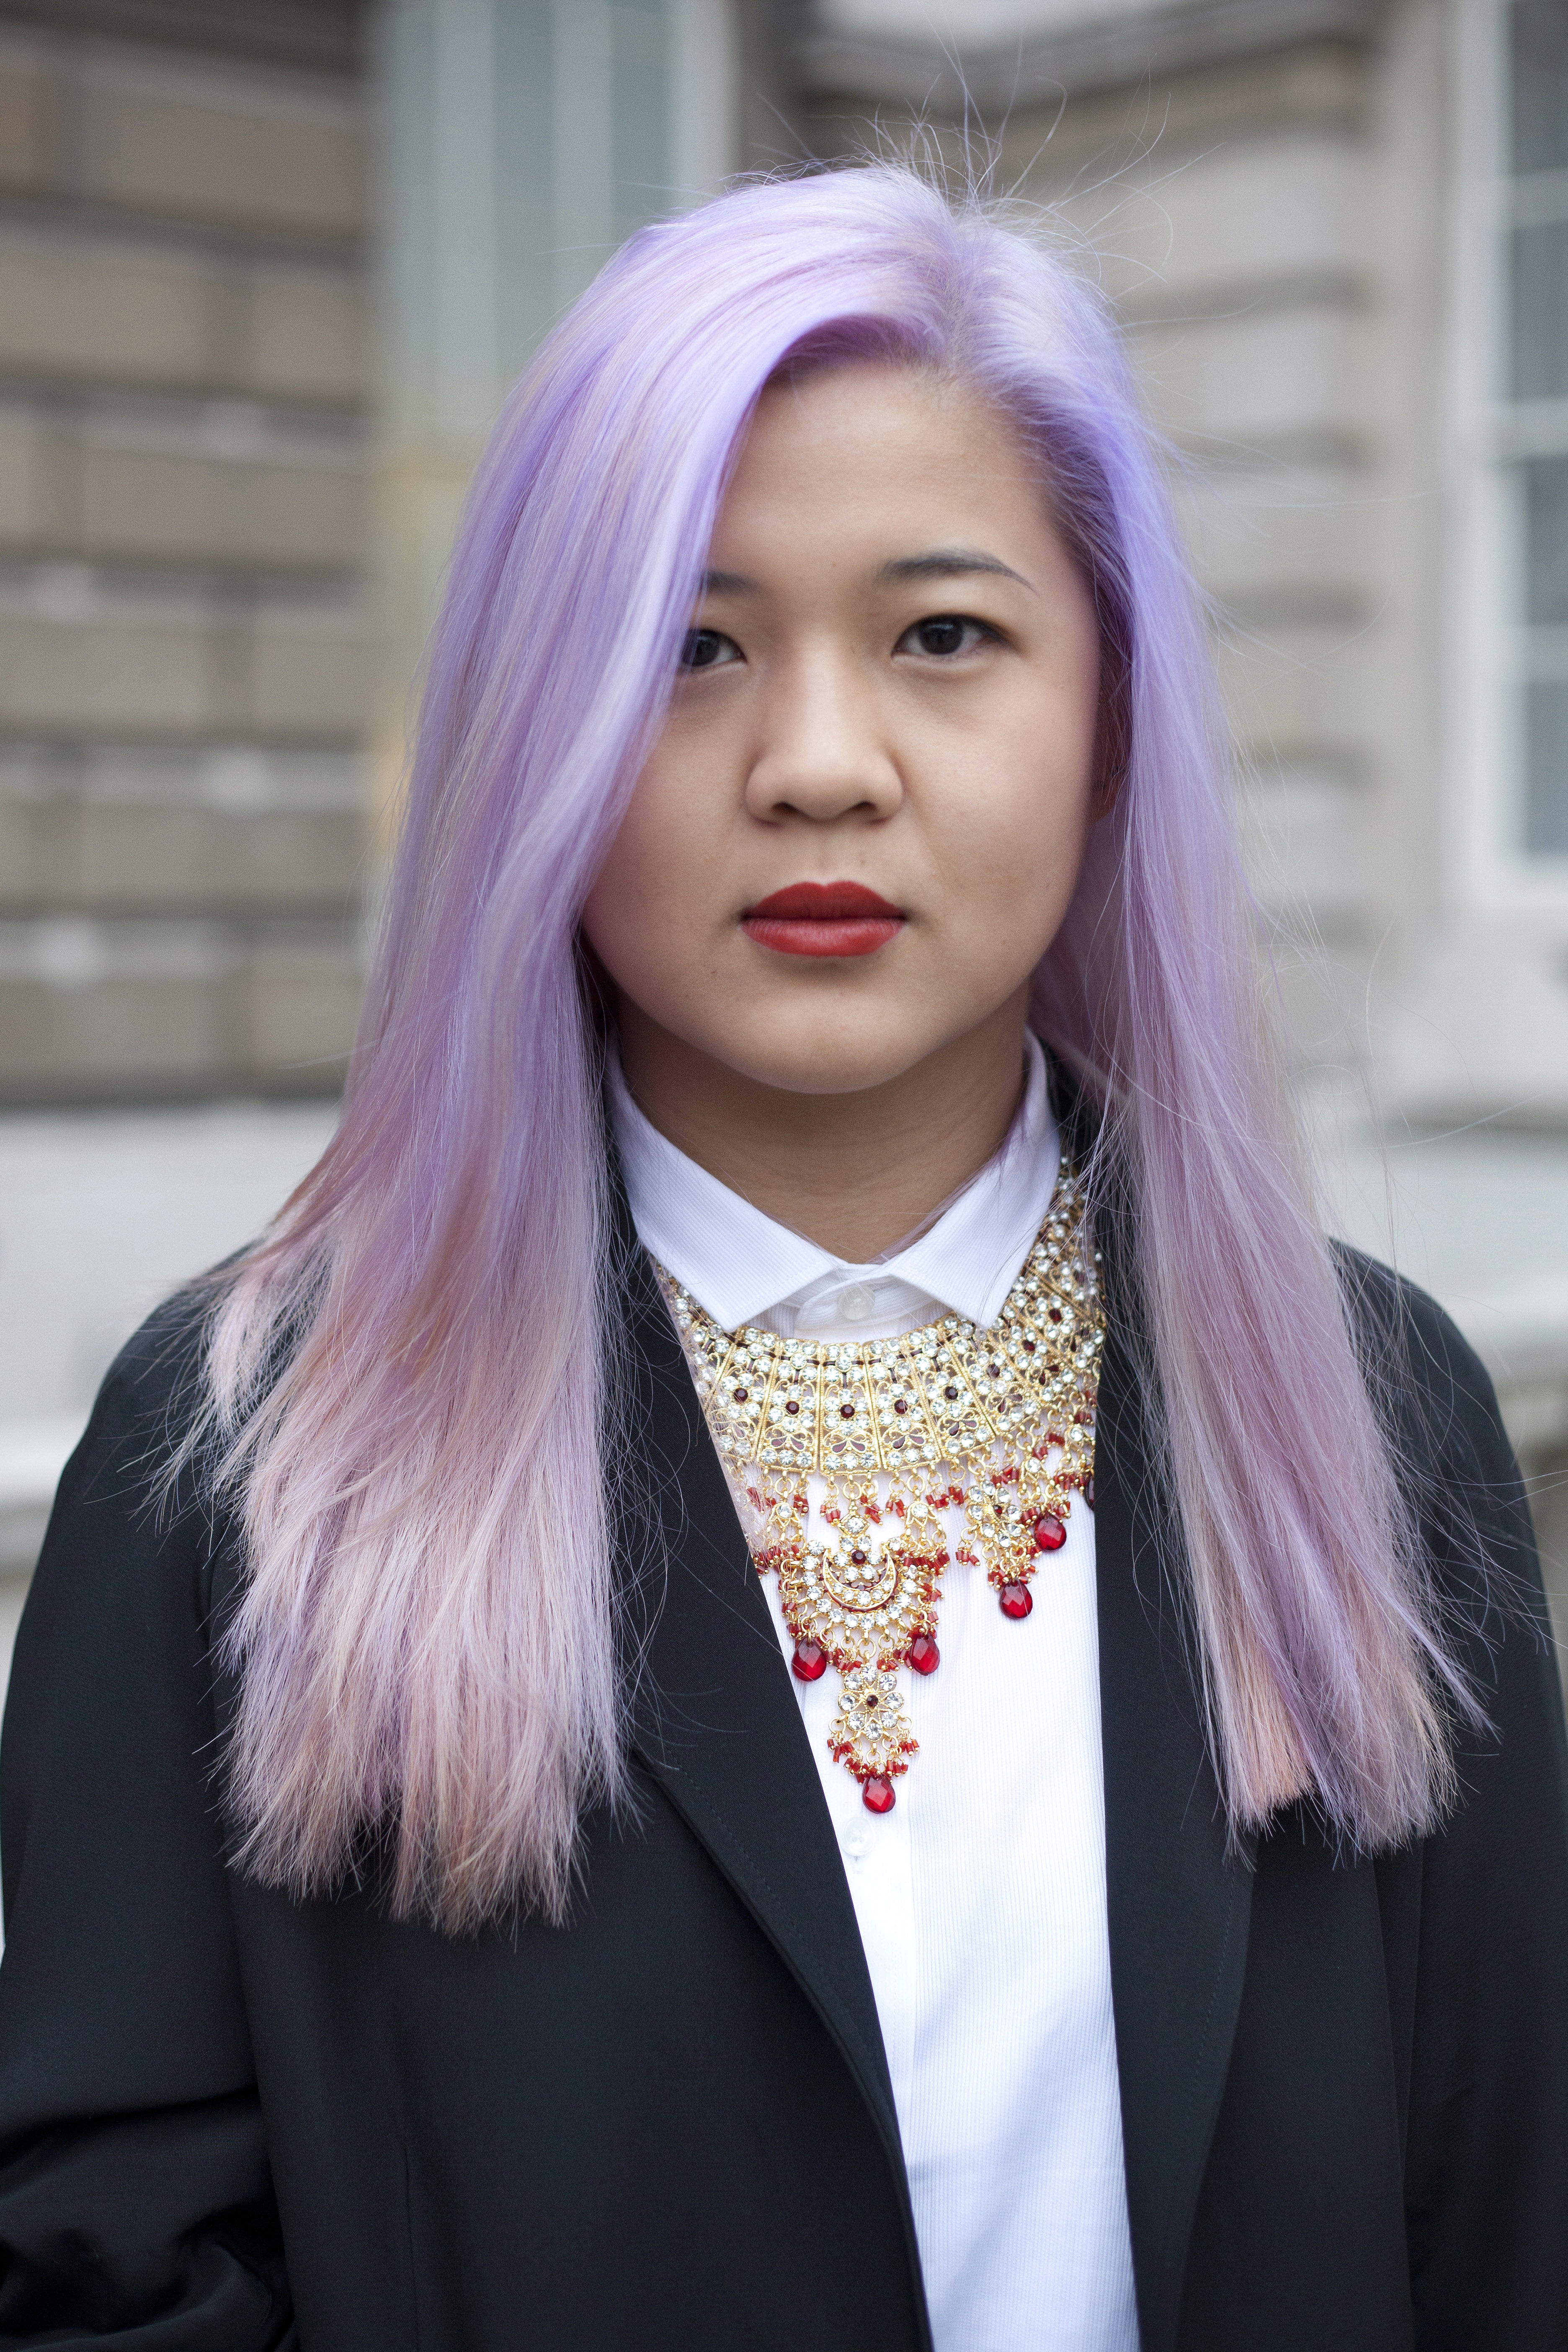 Ten Secrets About Pastel Lavender Hair That Has Never Been Revealed